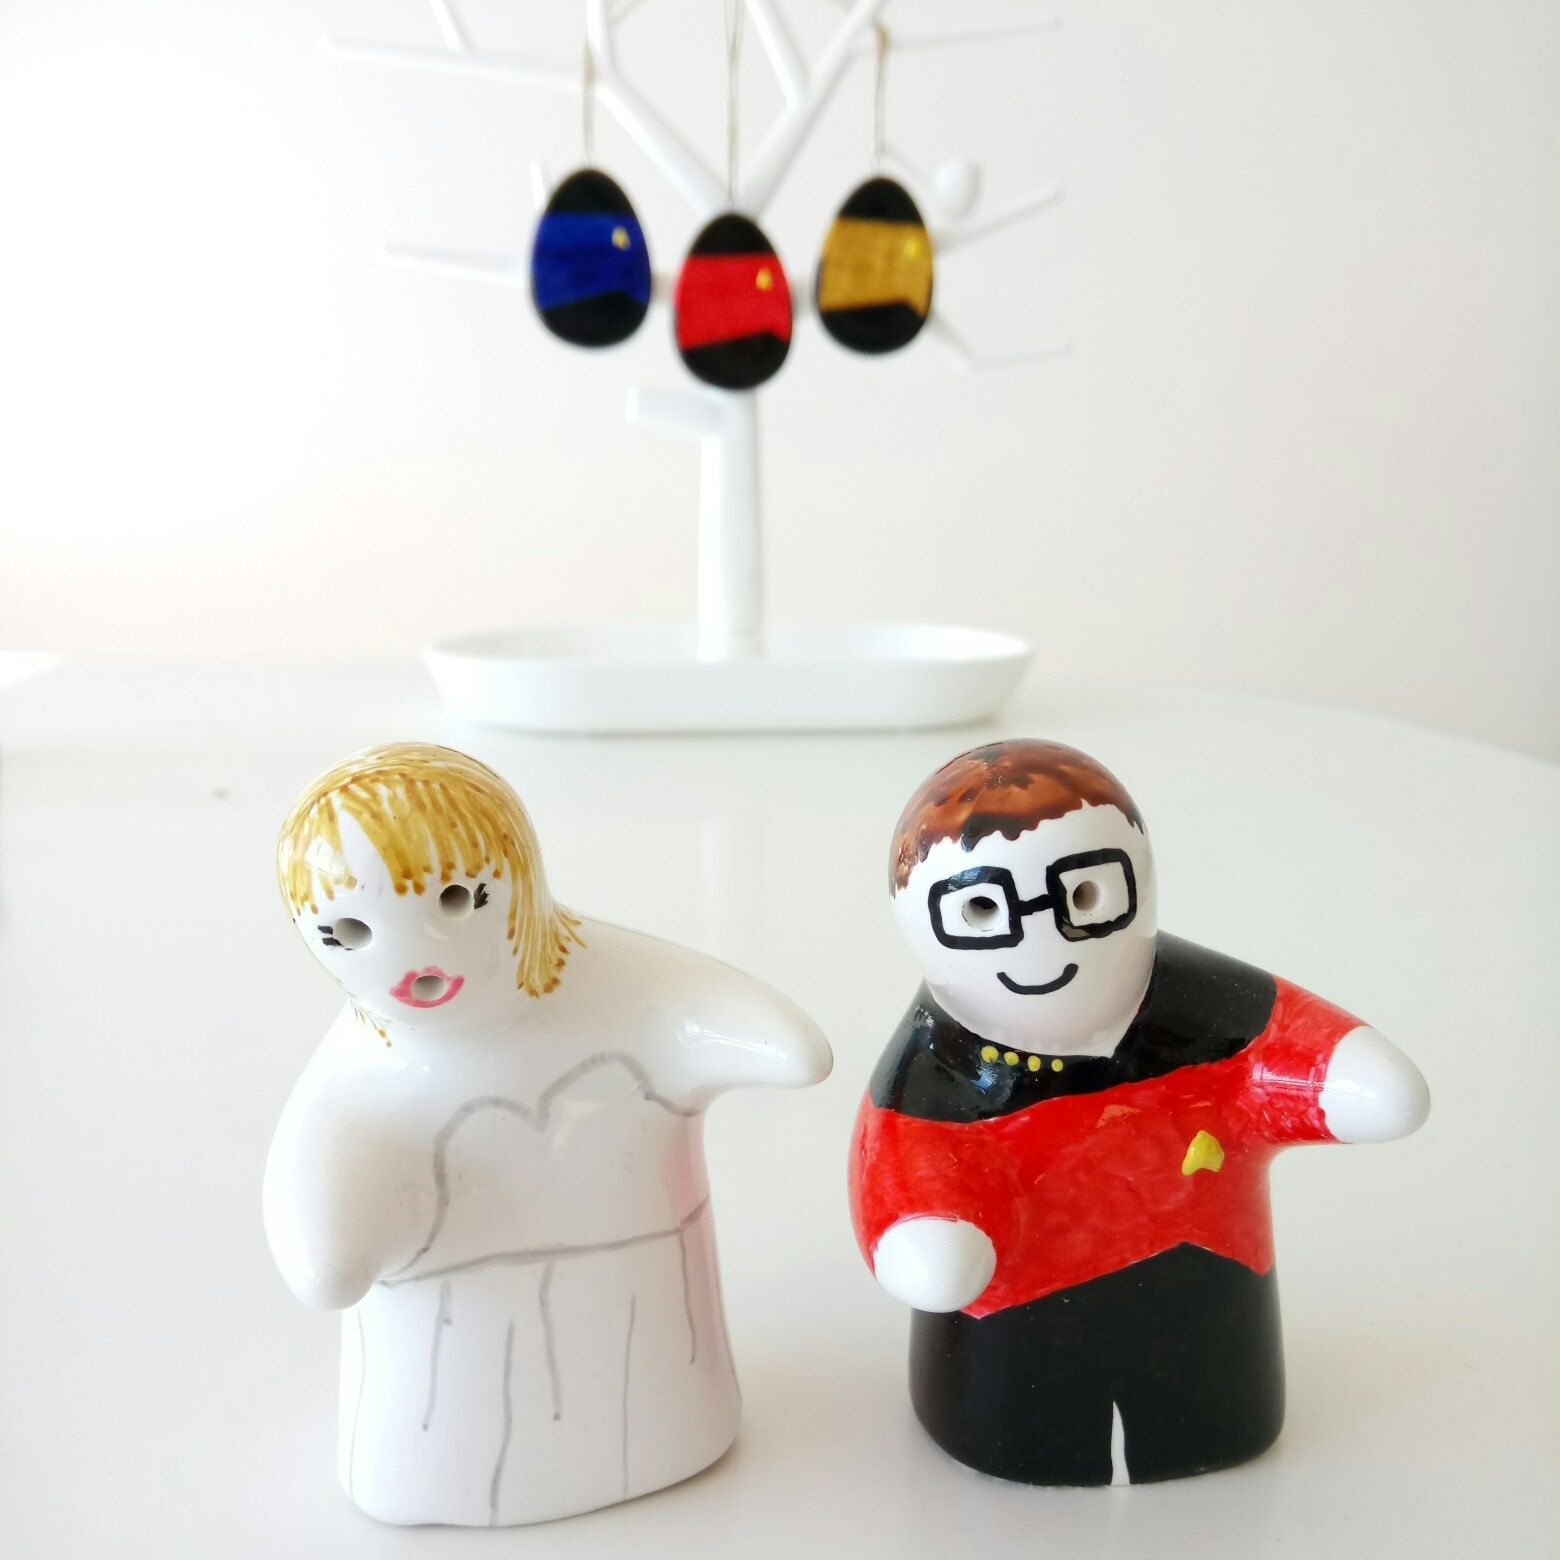 New listing Star Trek and bride hugging cake toppers salt and